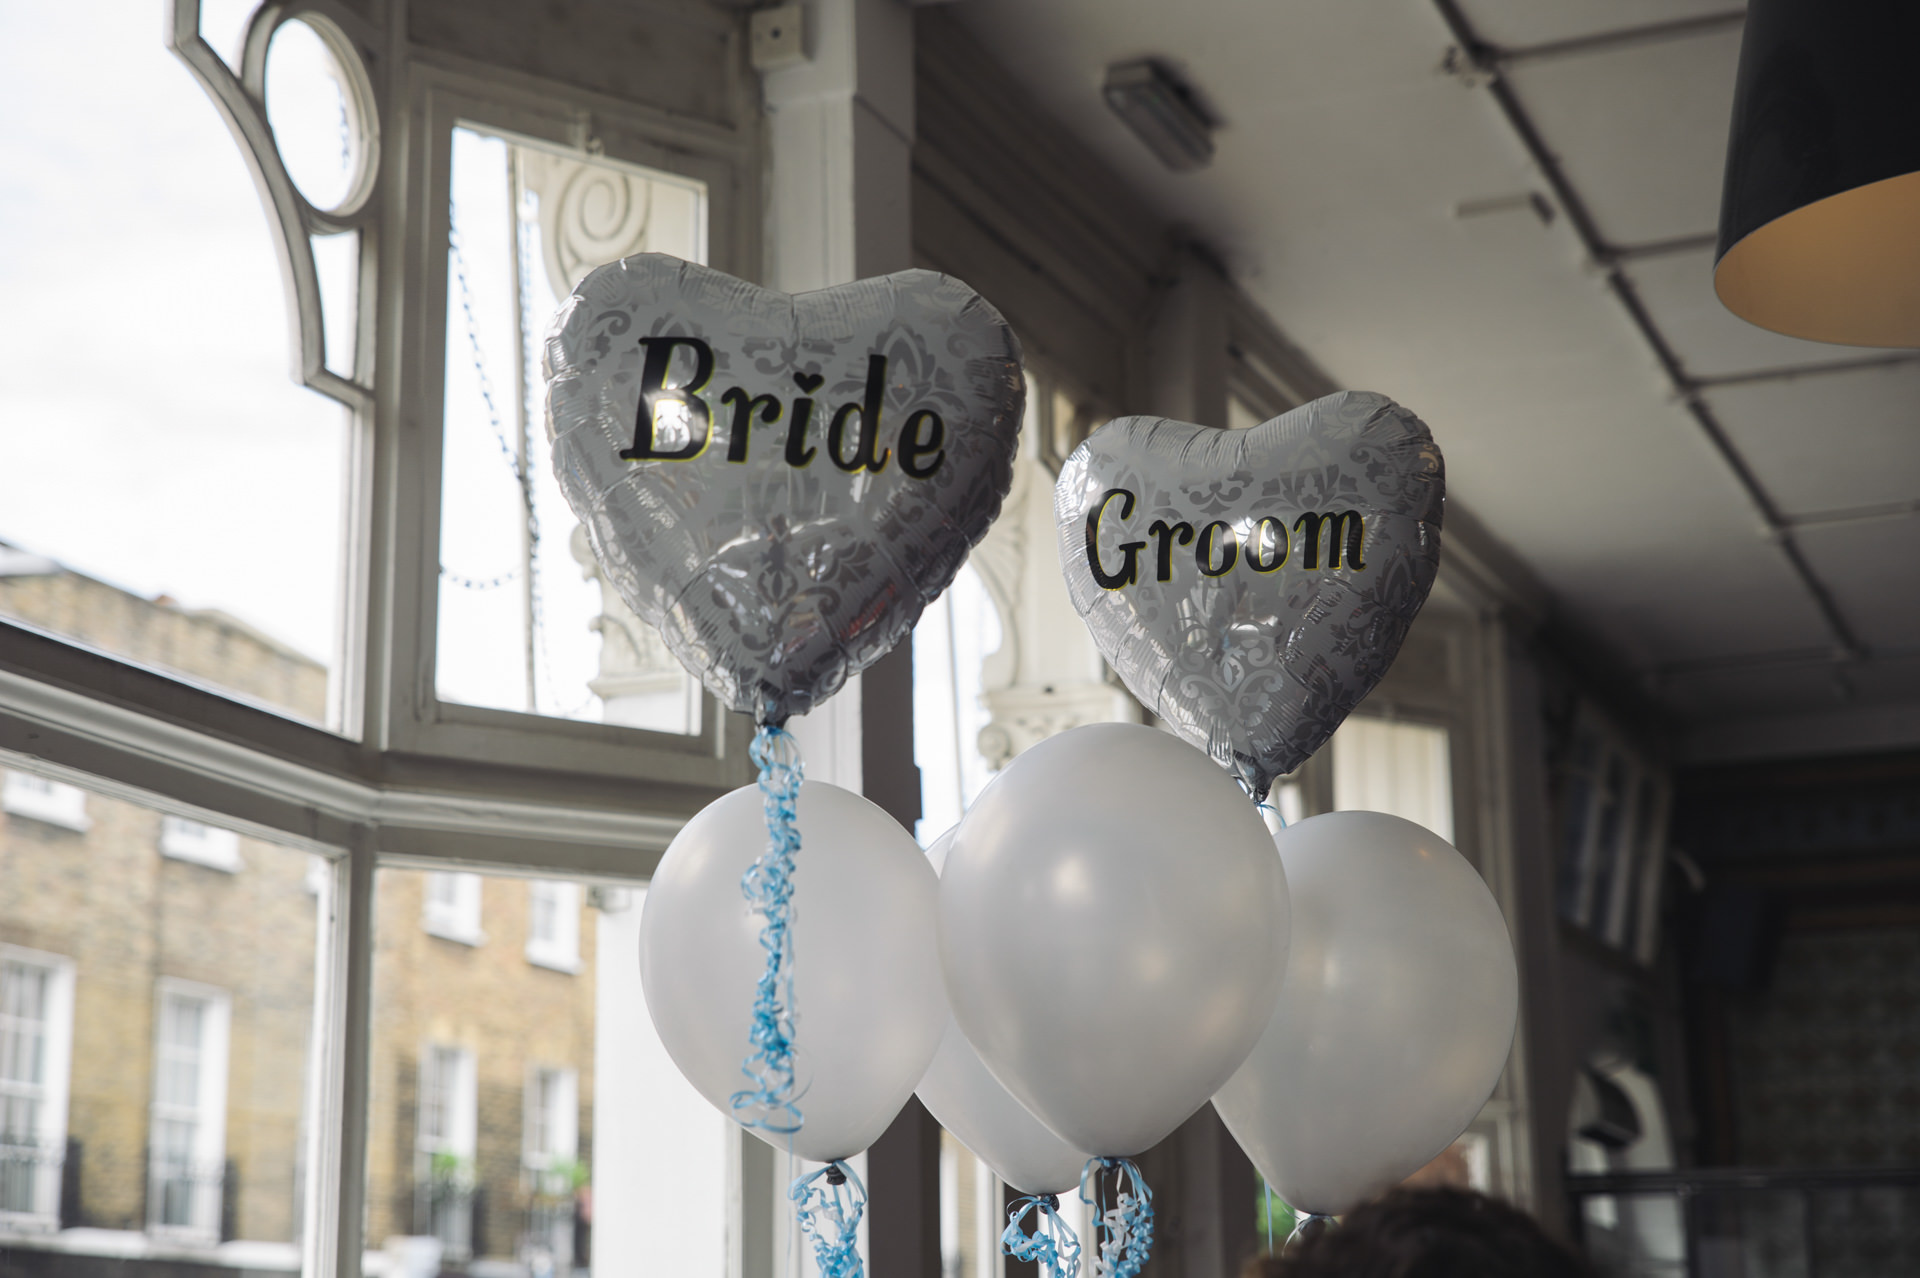 the gate insligton london wedding balloons heart shaped